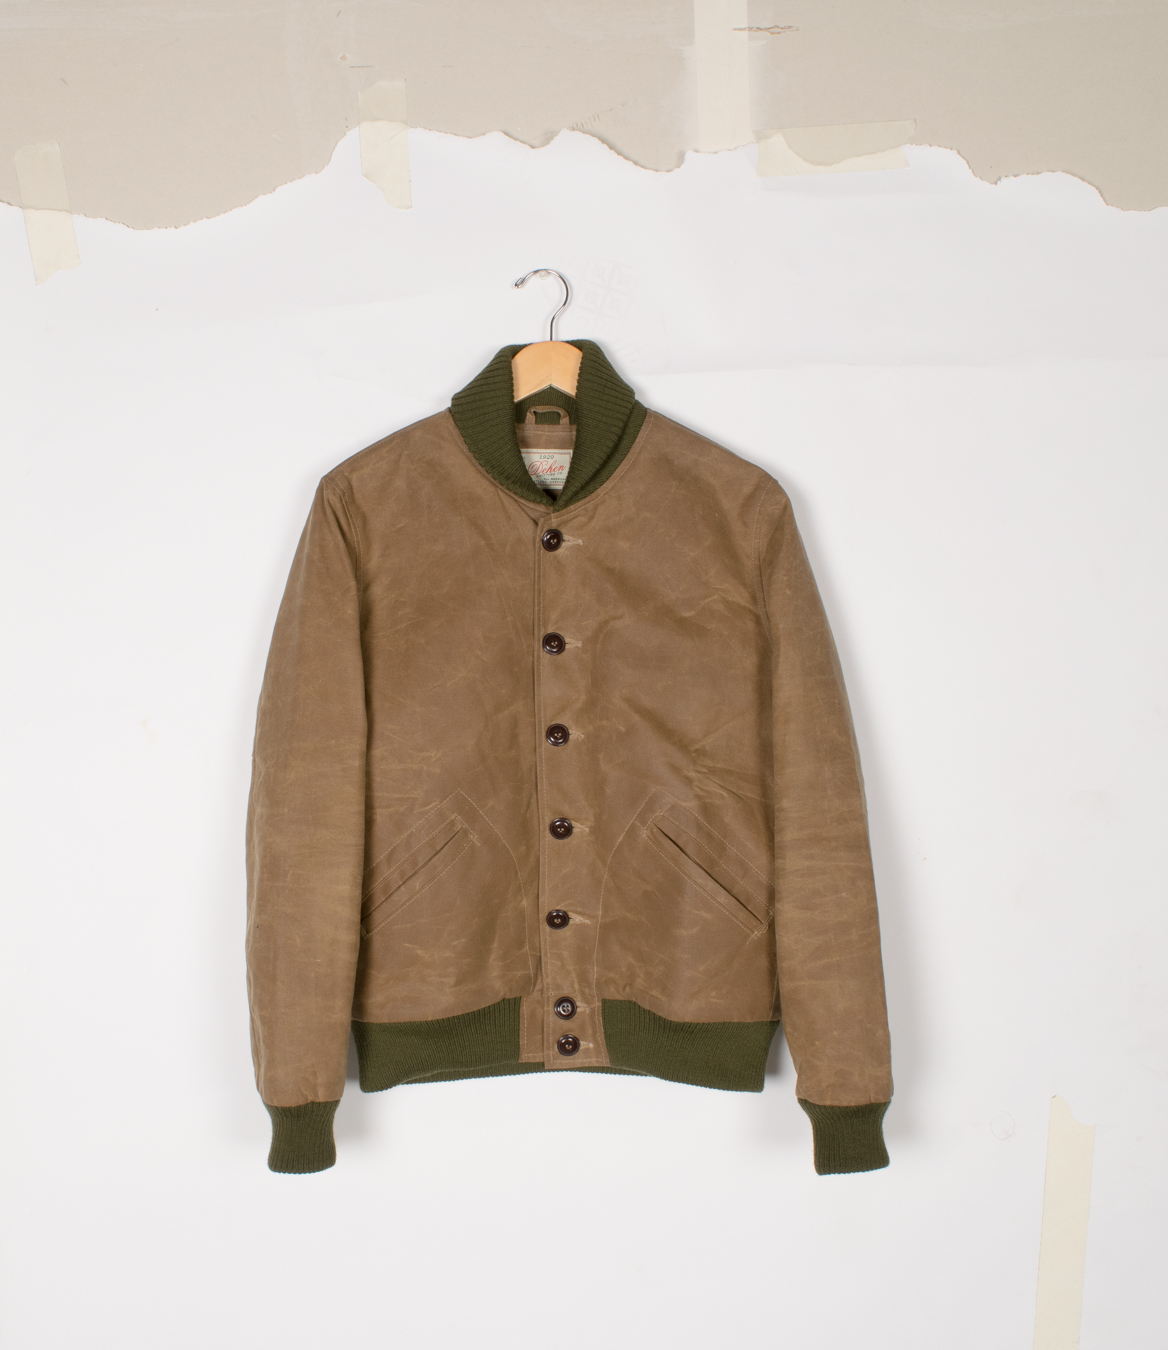 Club Jacket - Field Tan Waxed Canvas - $475